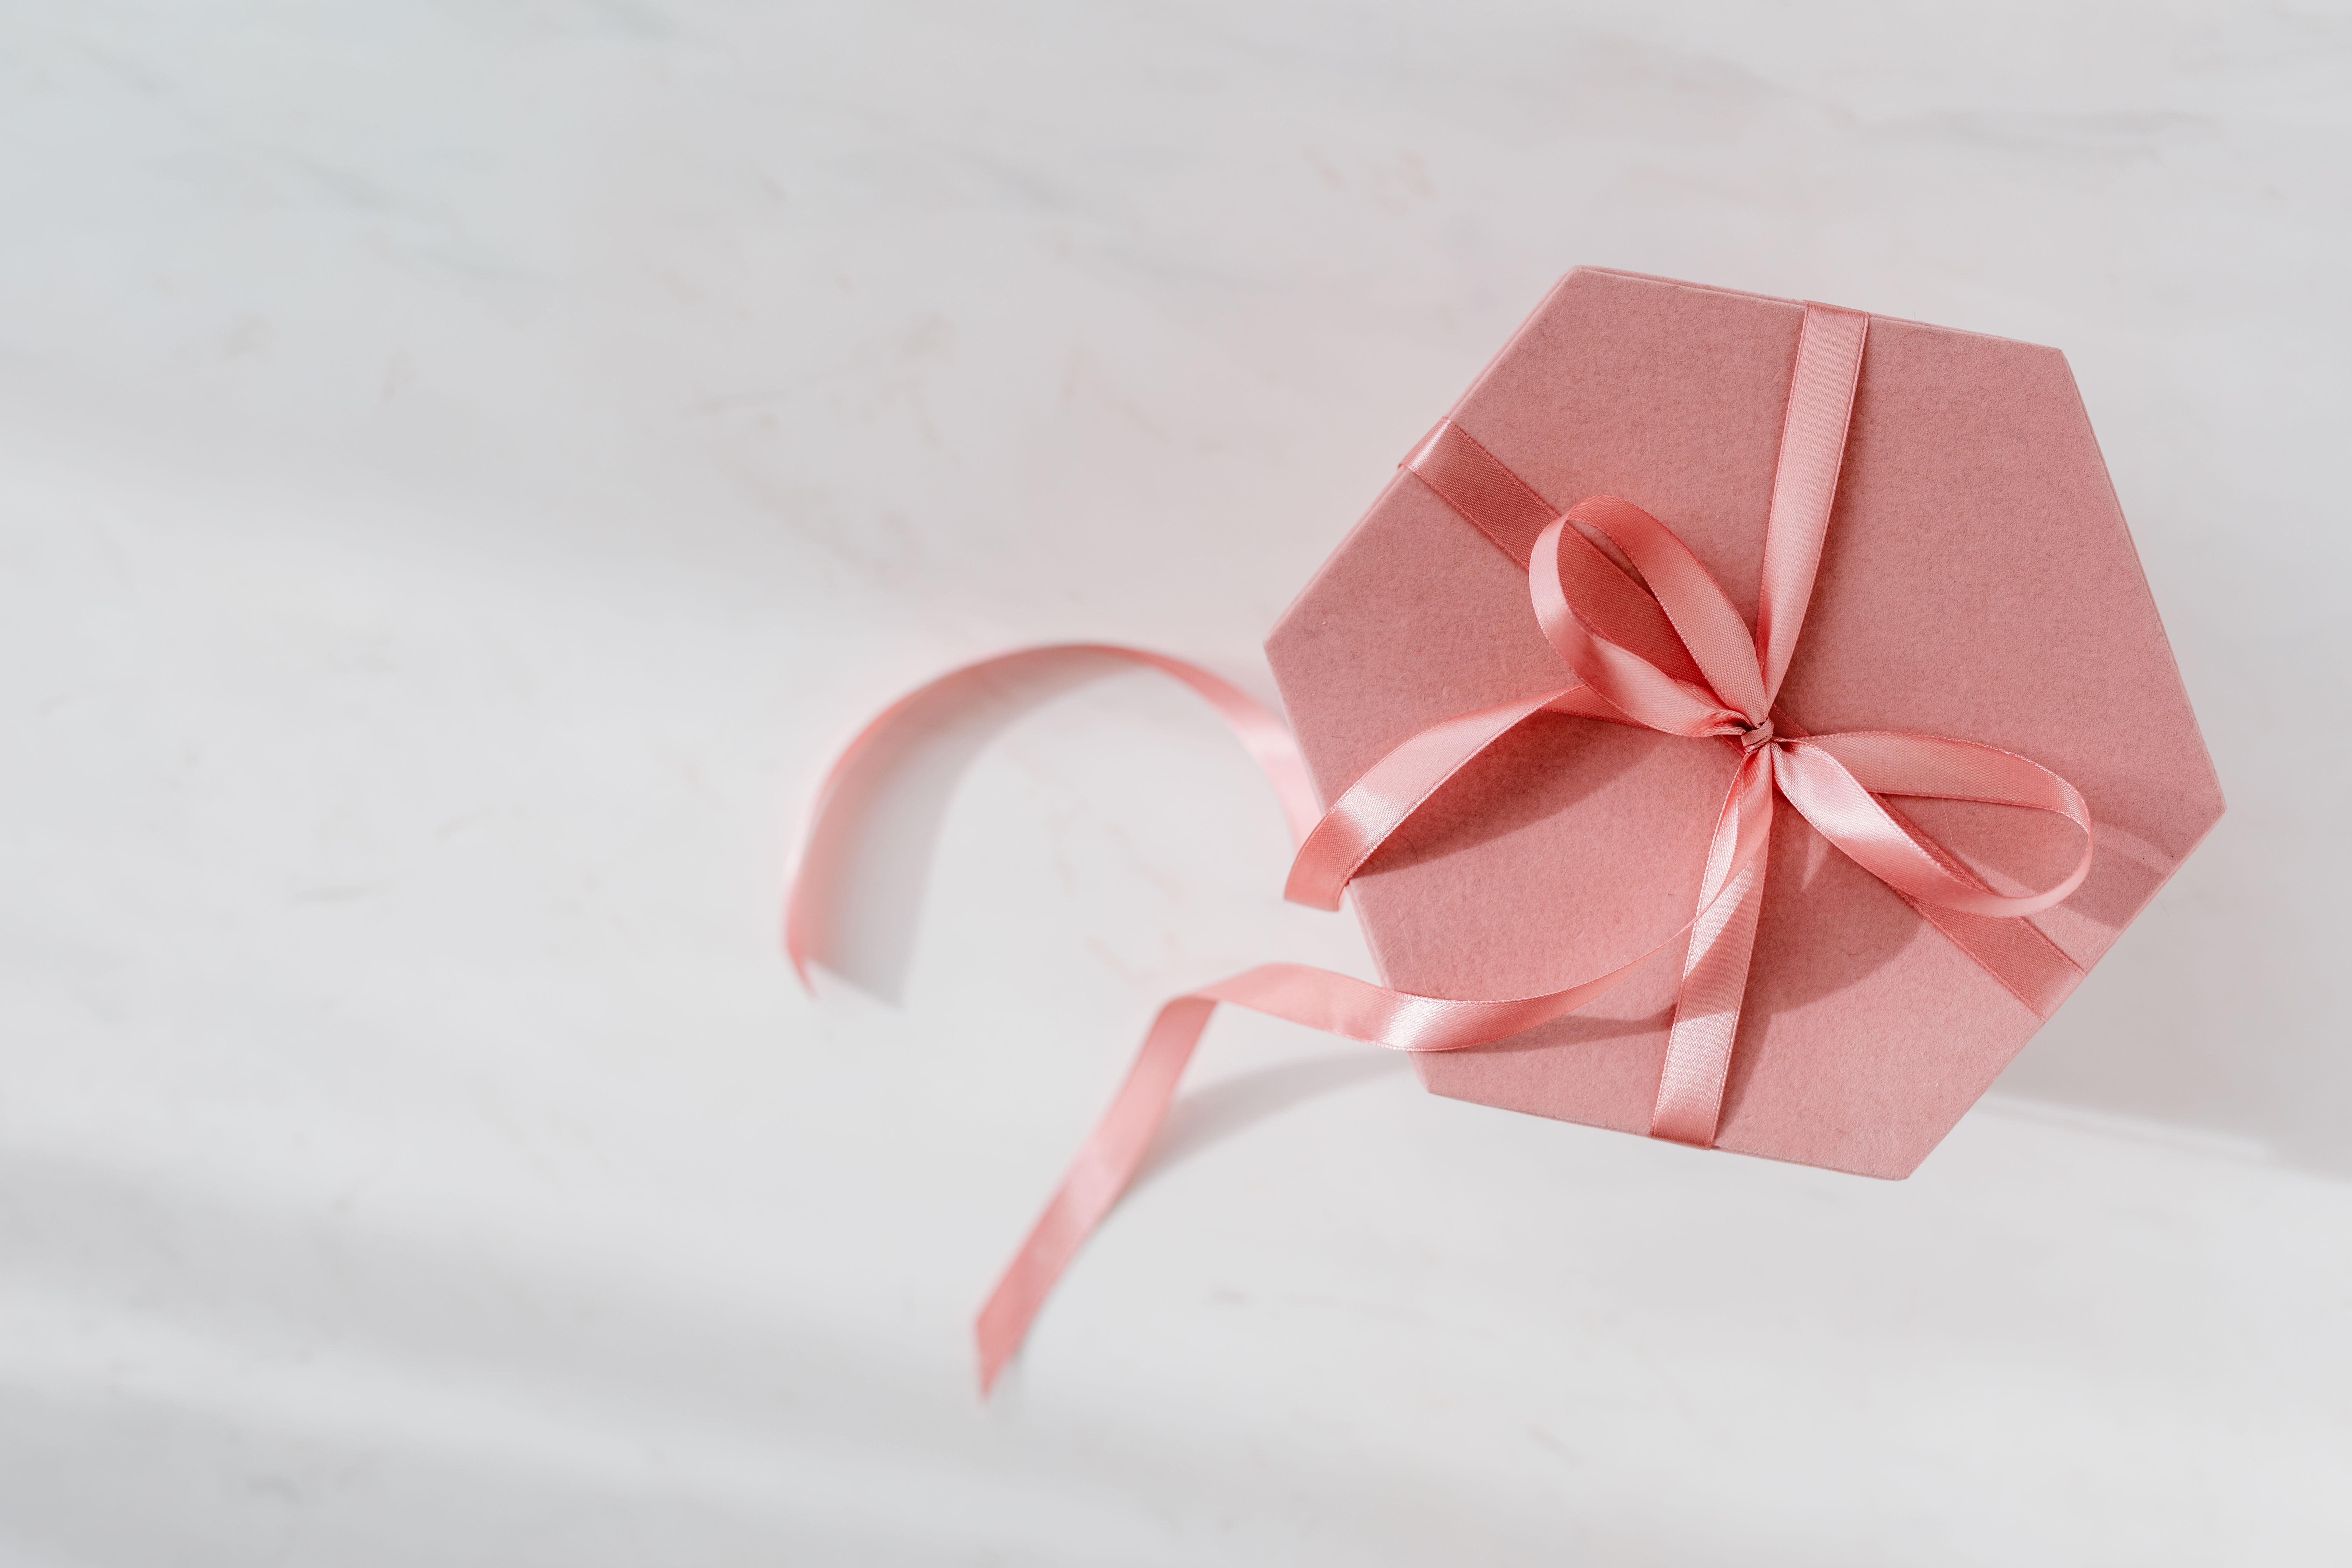 kaboompics_Light pink velvety box with satin ribbon on white marble